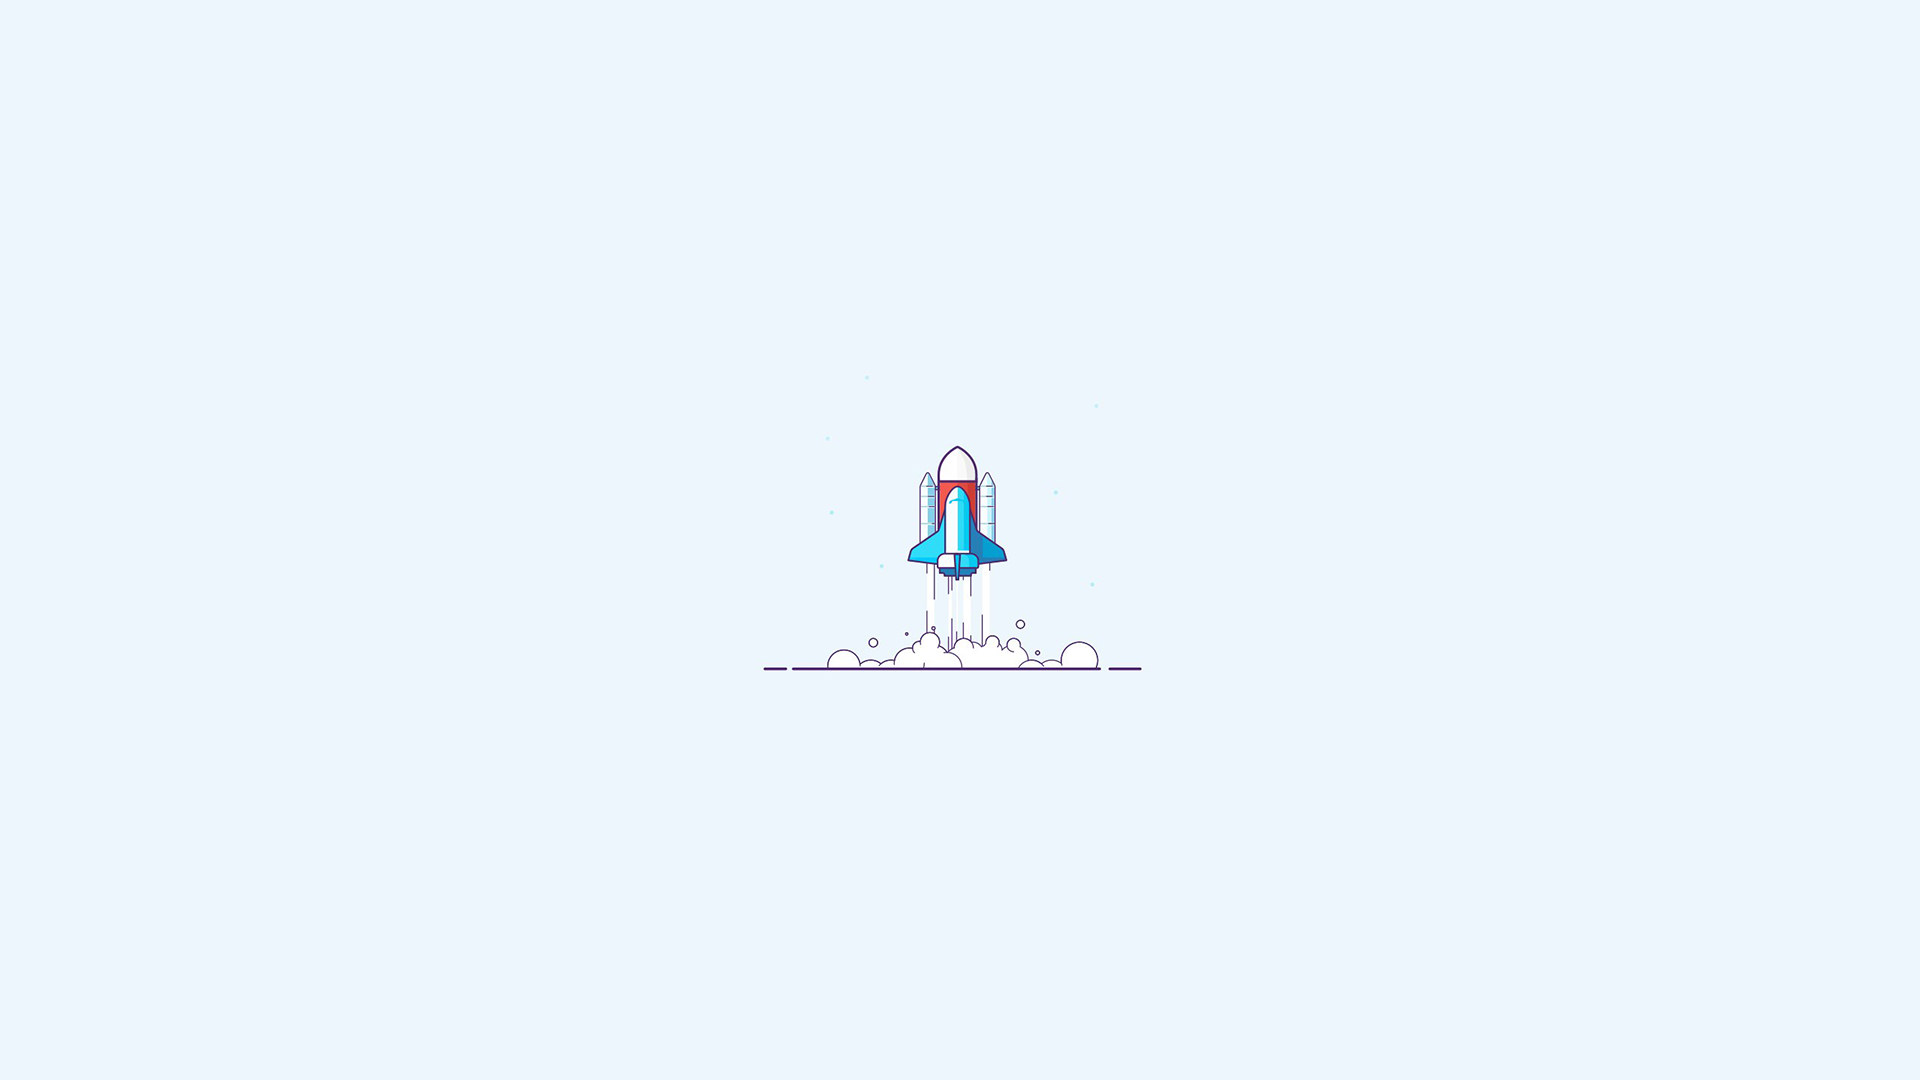 General 1920x1080 space spaceship minimalism simple simple background lift off space shuttle Launch